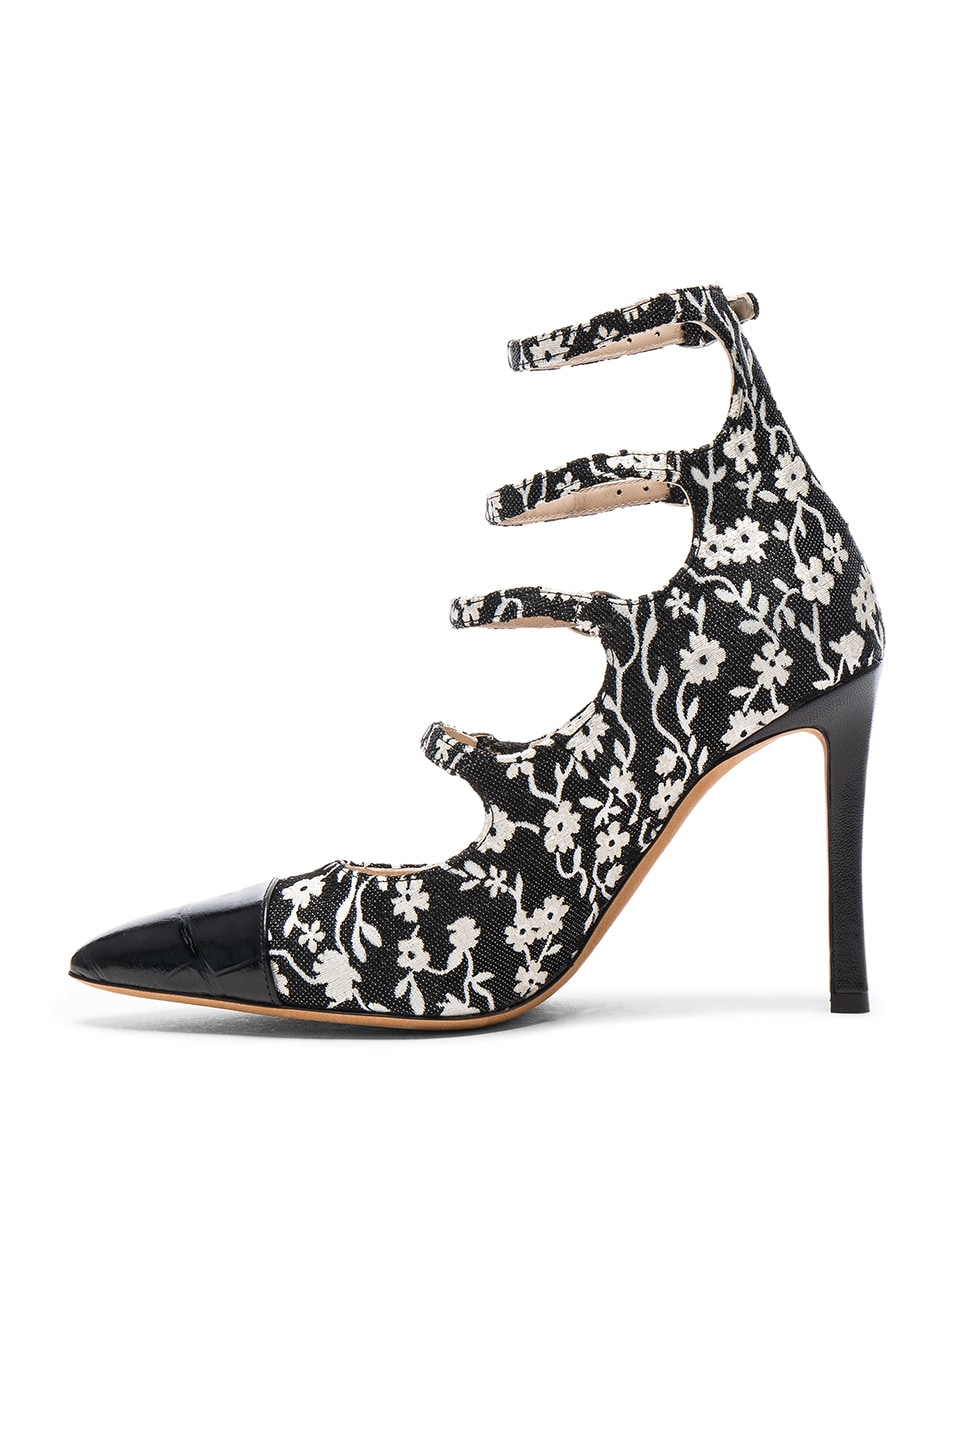 Image 5 of Altuzarra Isabella Multi Strap Mary Jane Heels in Black & Natural White